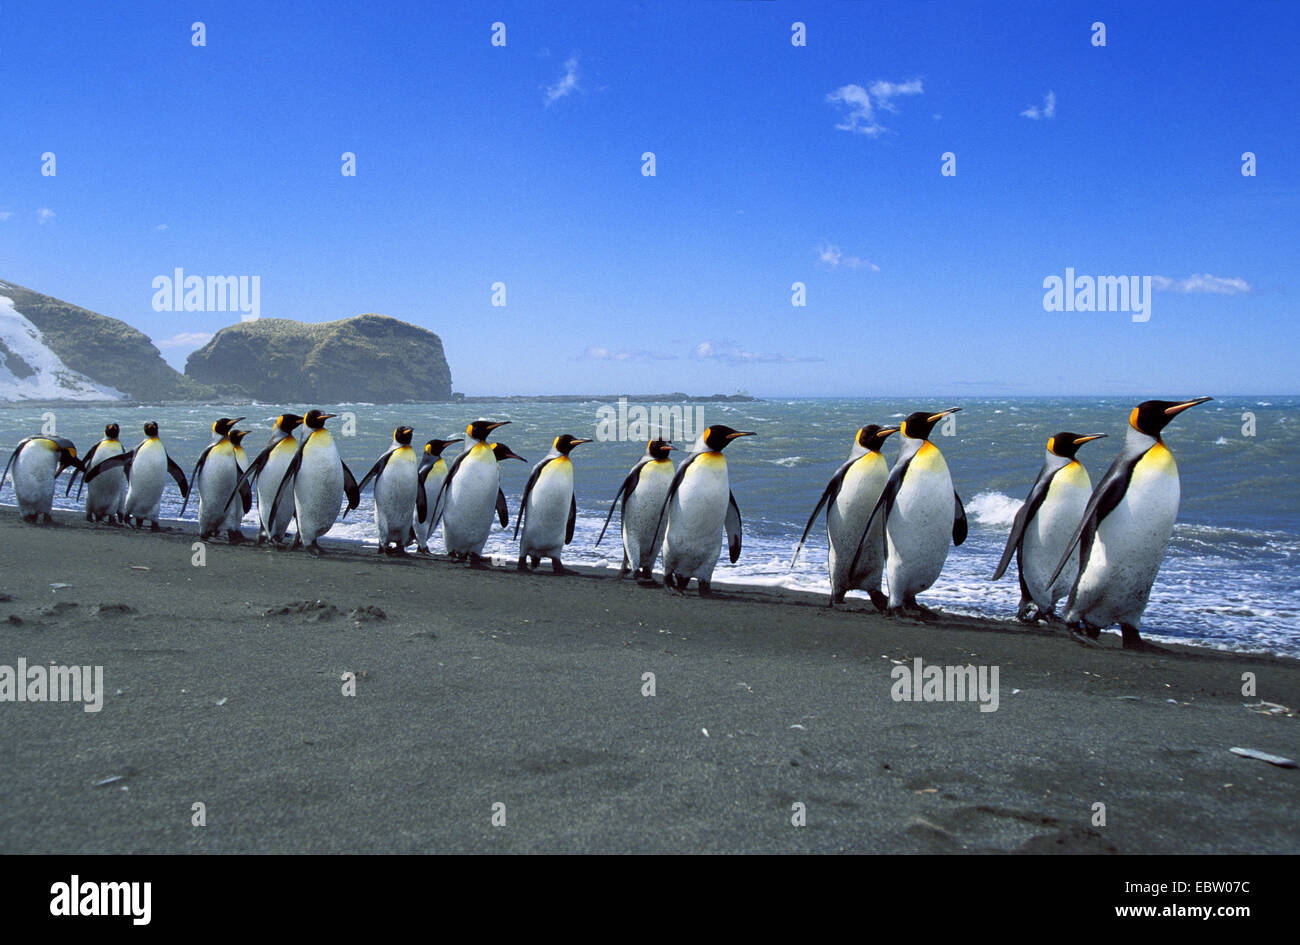 king penguin (Aptenodytes patagonicus), King Penguins lined up, Suedgeorgien - Stock Image